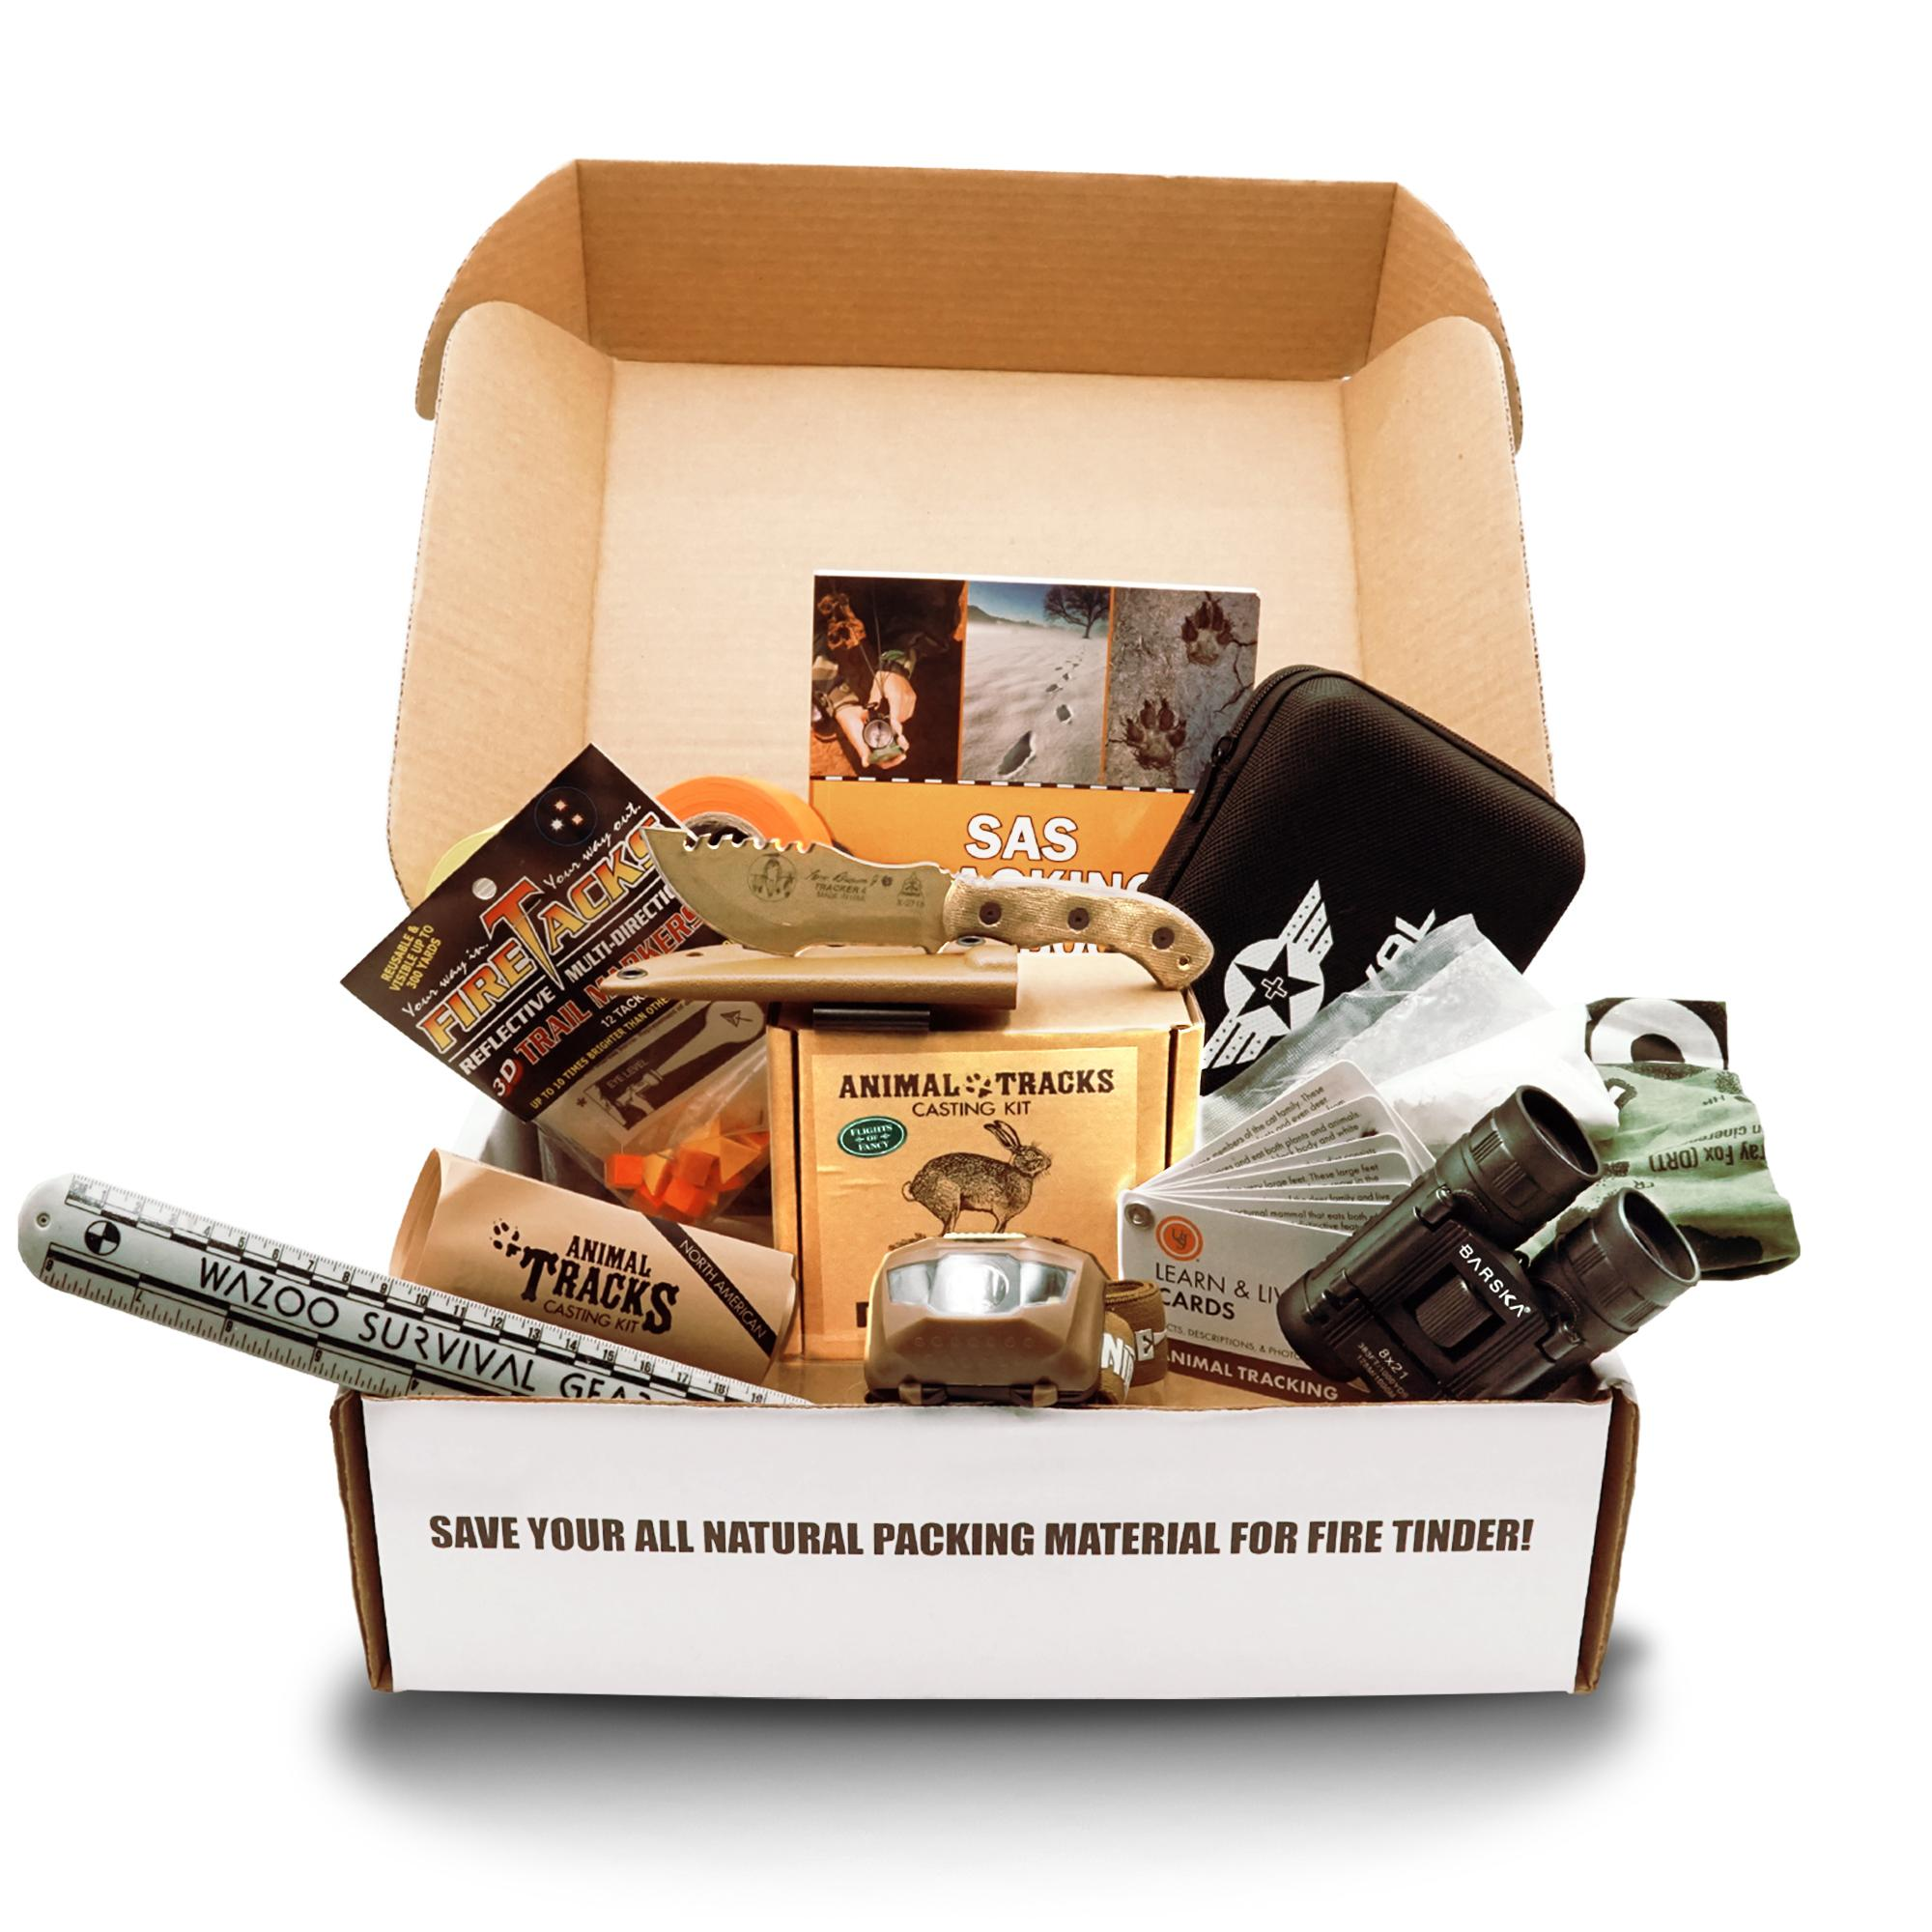 BattlBox - Survival and Outdoor Gear Subscription Box: Pro Plus